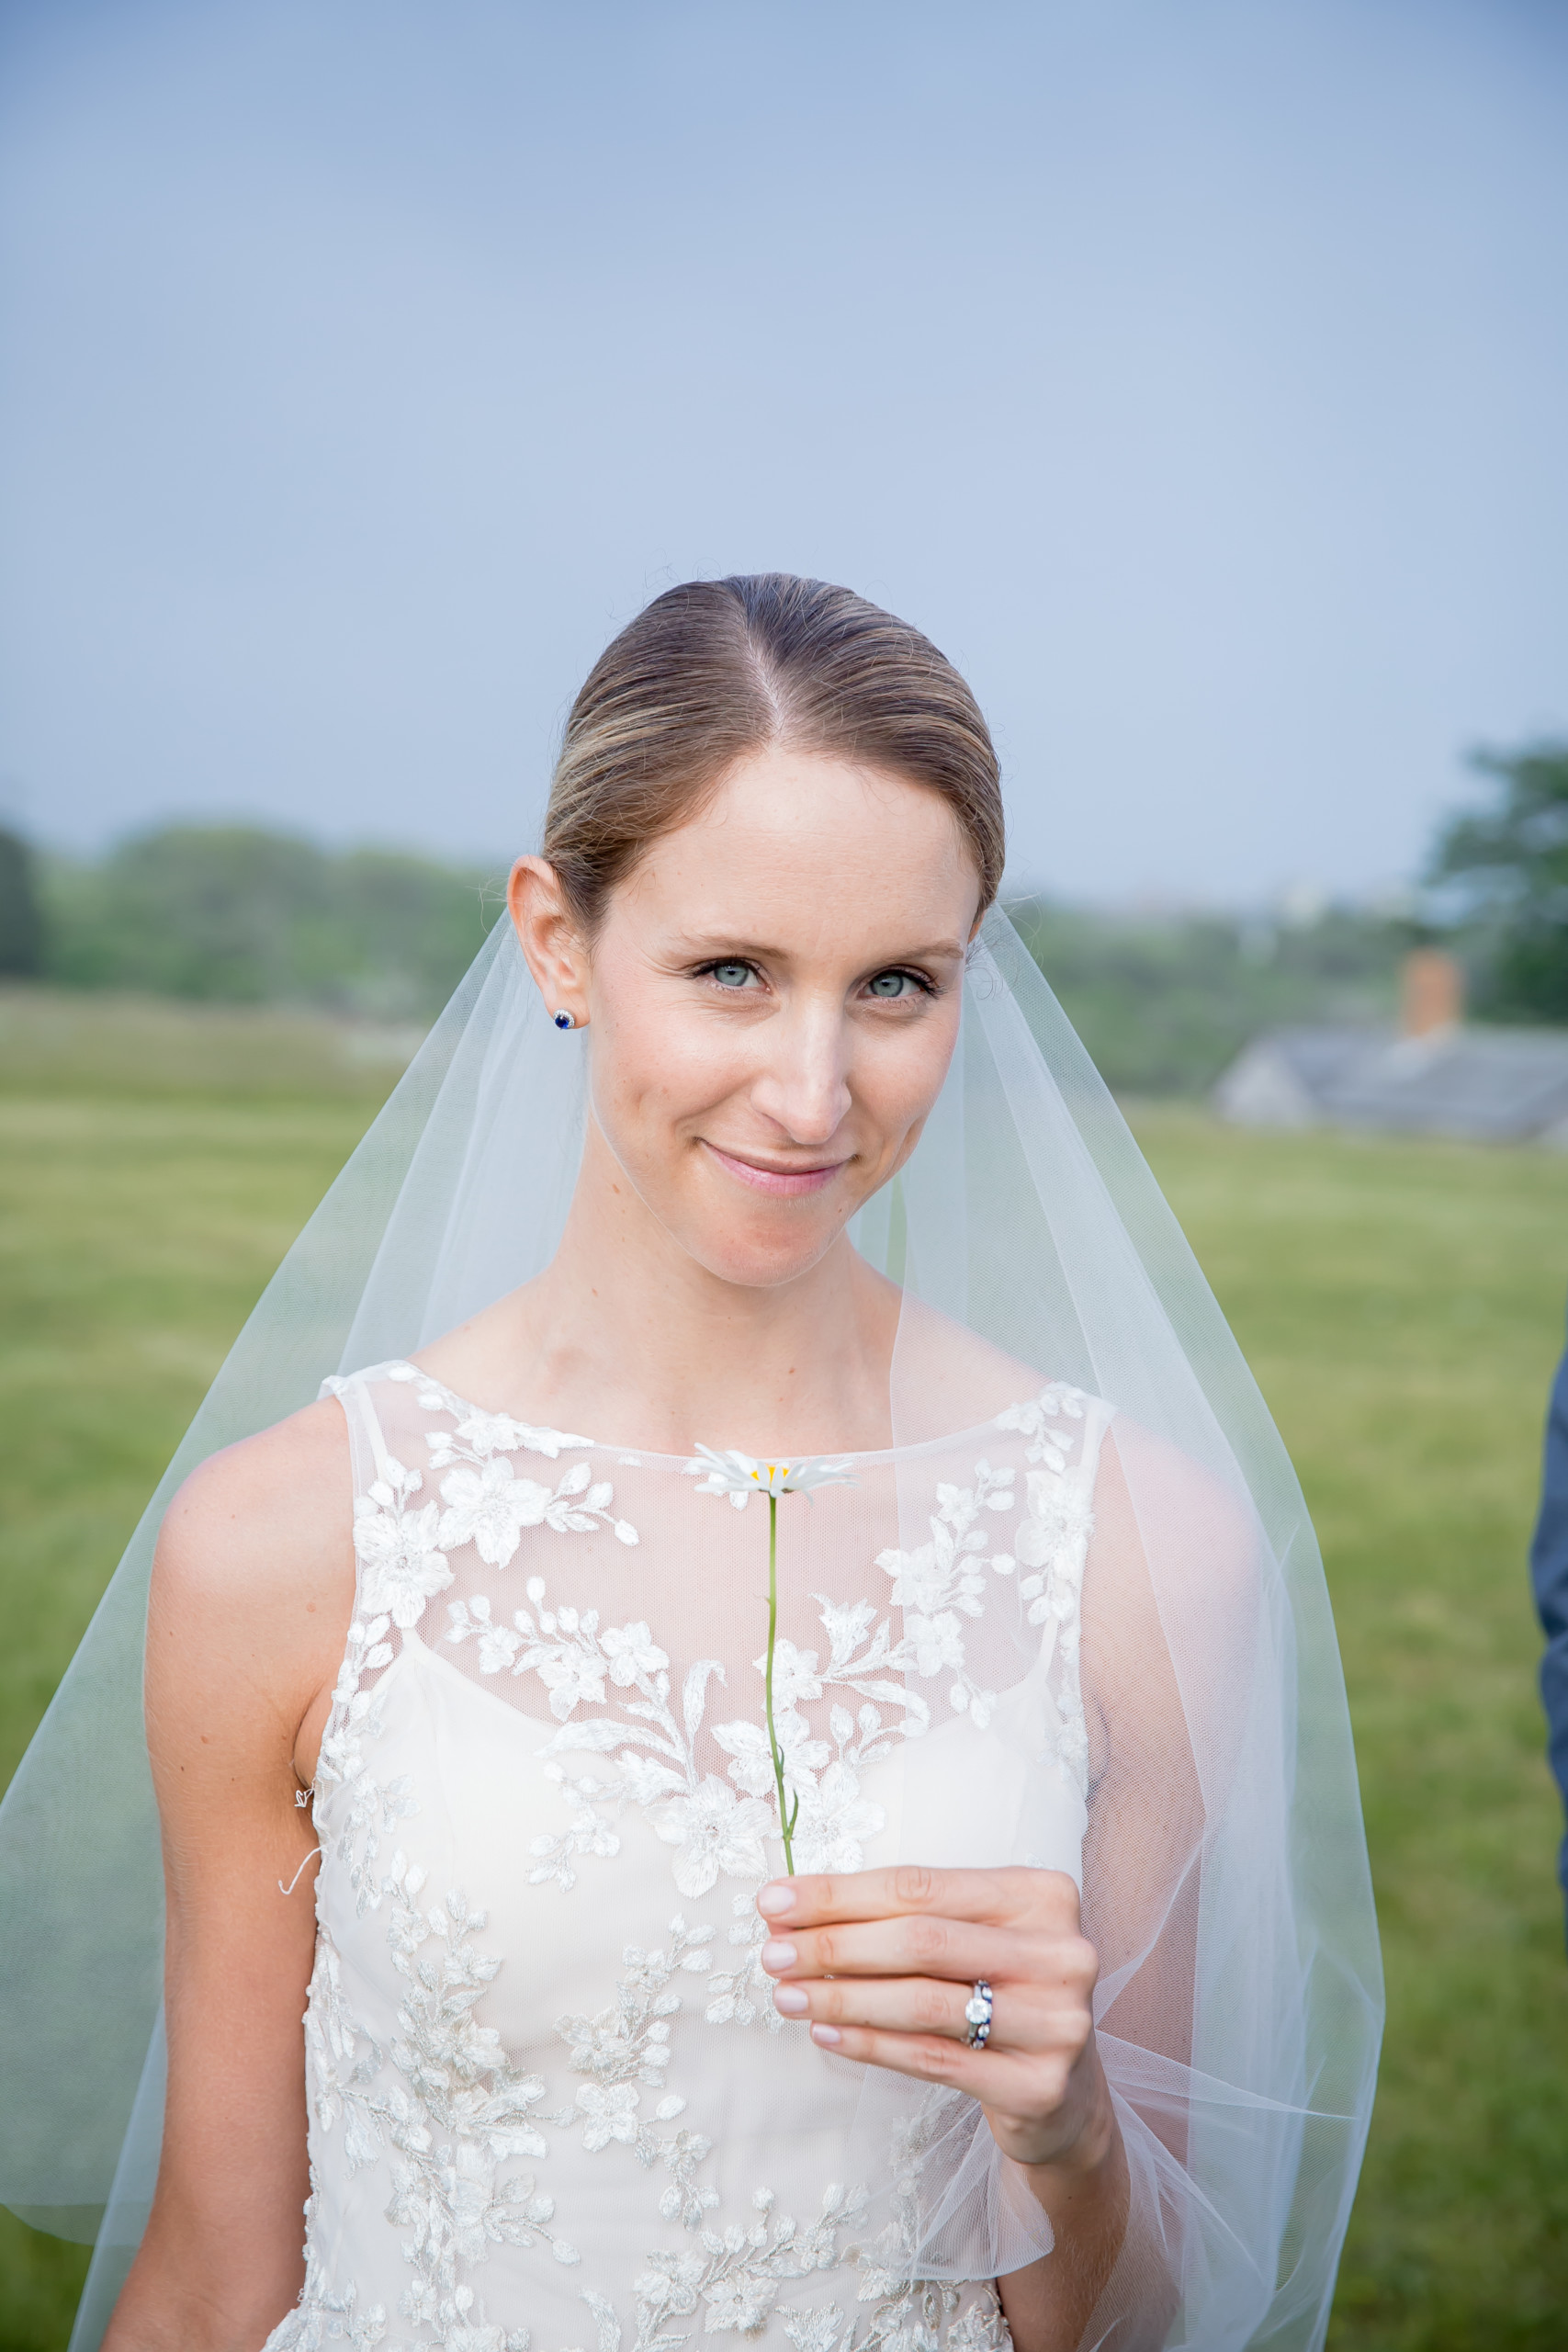 Bride with perfect skin and very natural makeup poses after her ceremony at the Allen Farm in Chilmark, Martha's Vineyard, MA